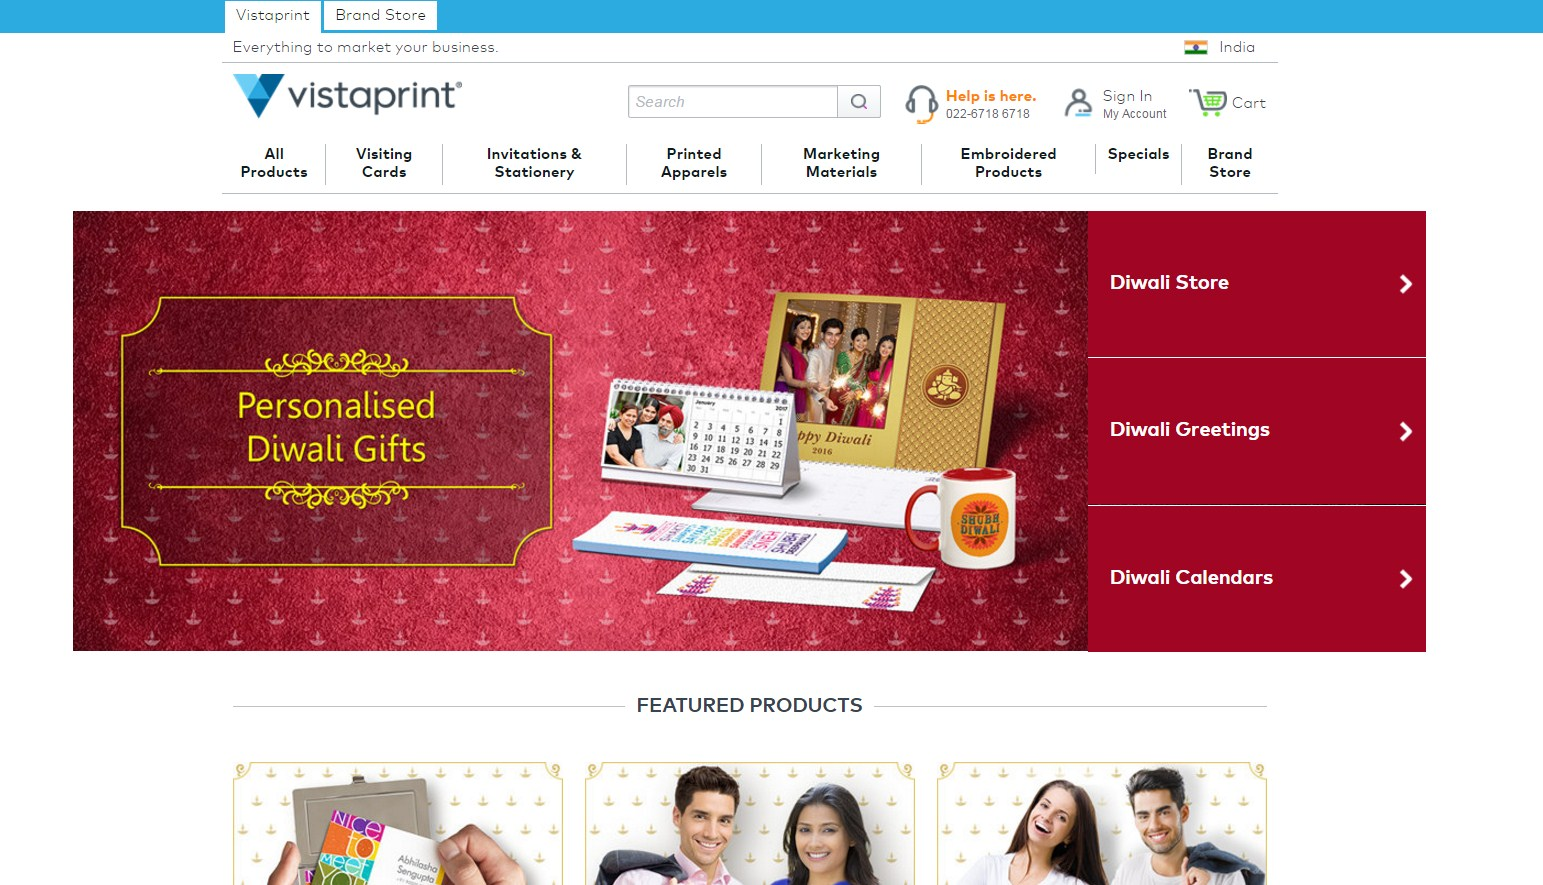 20 best free online brochure maker tools for Vistaprint brochure template